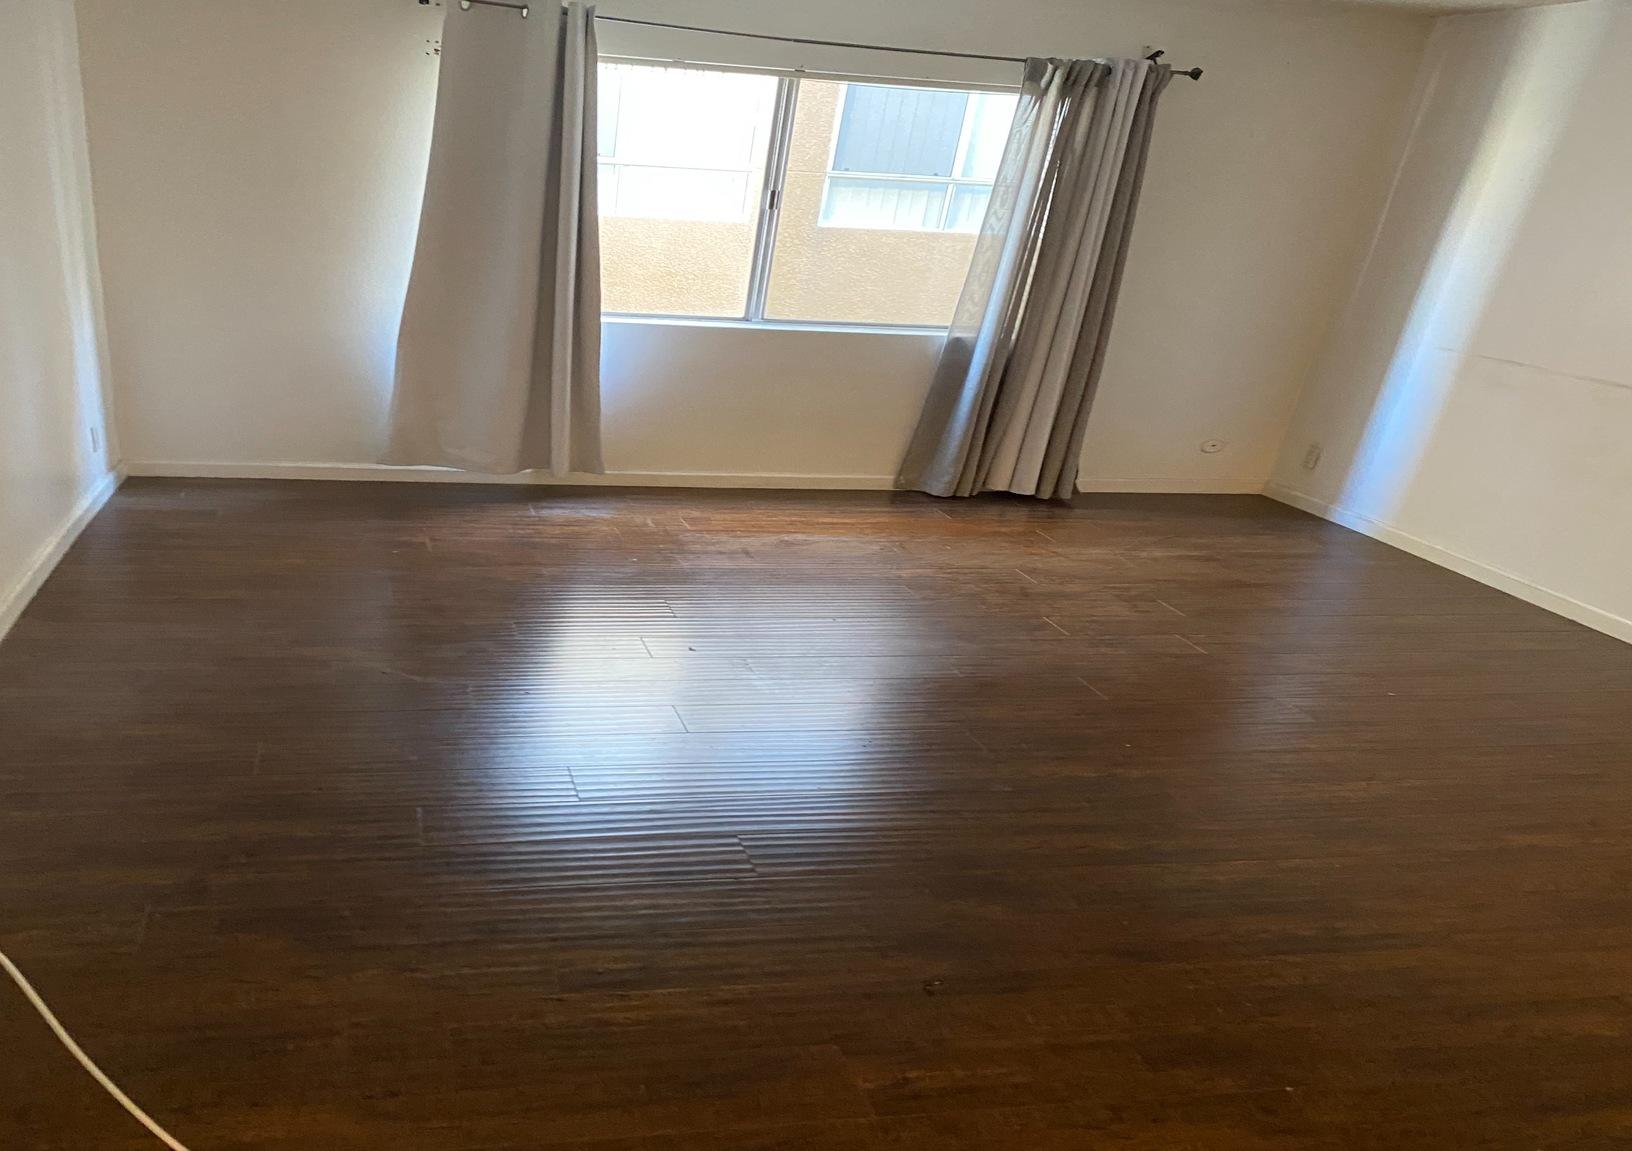 Apartment clean out services Los Angeles, CA - After Photo